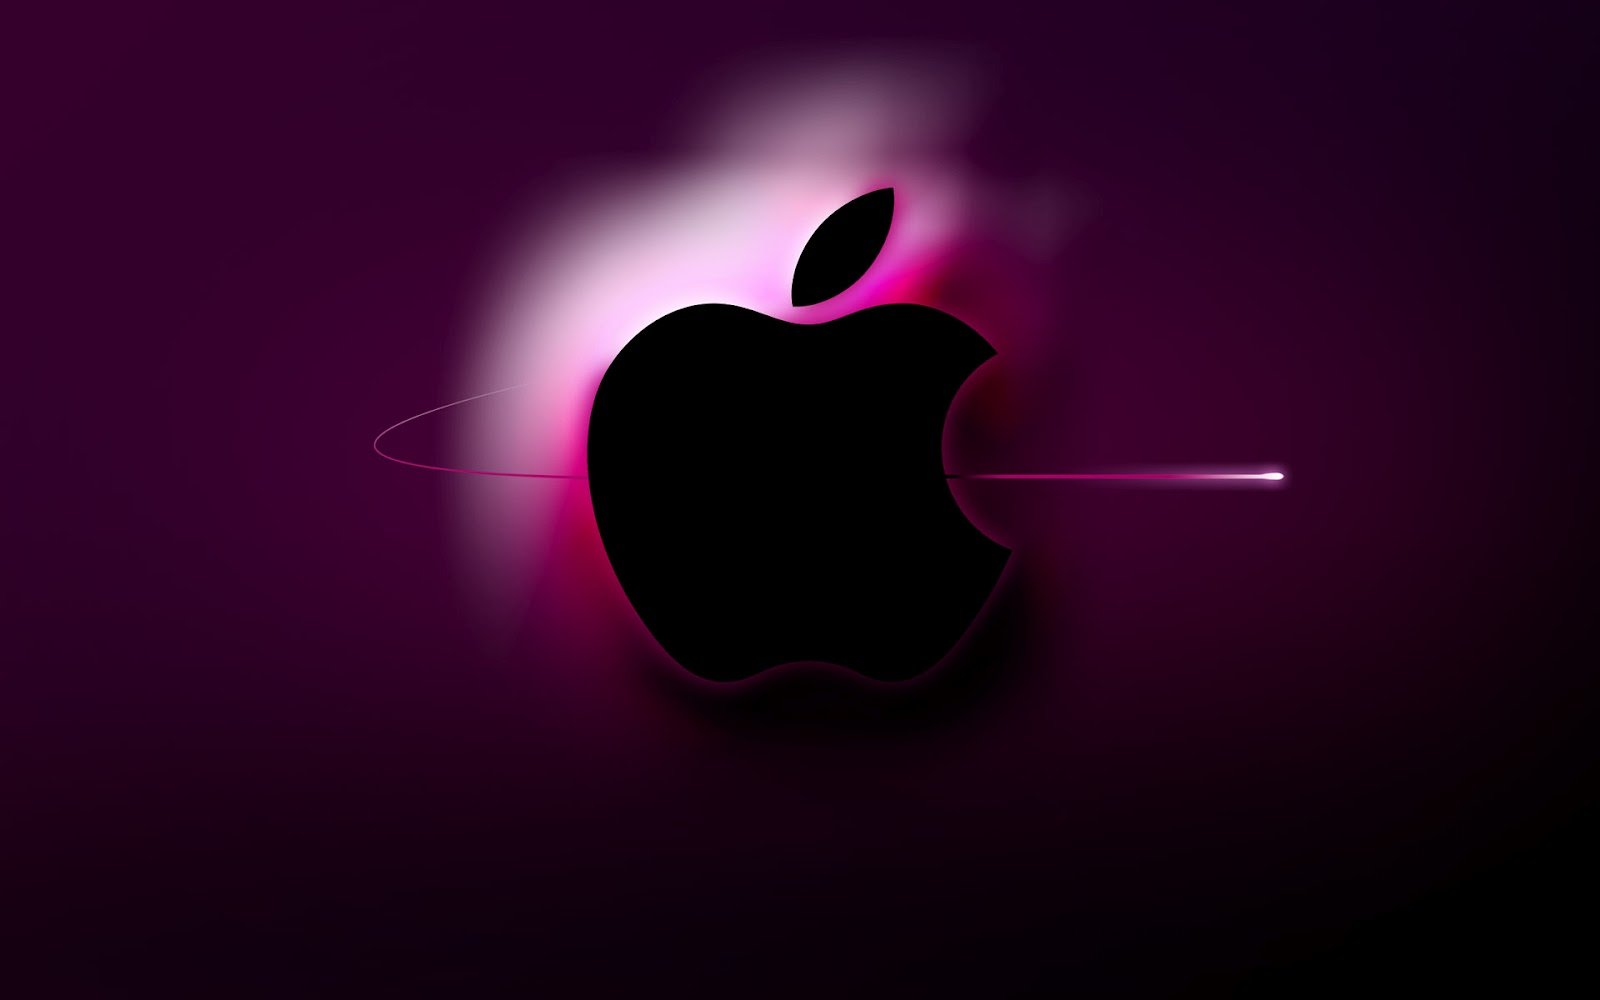 50 ] New Apple Wallpapers For IPhone On WallpaperSafari